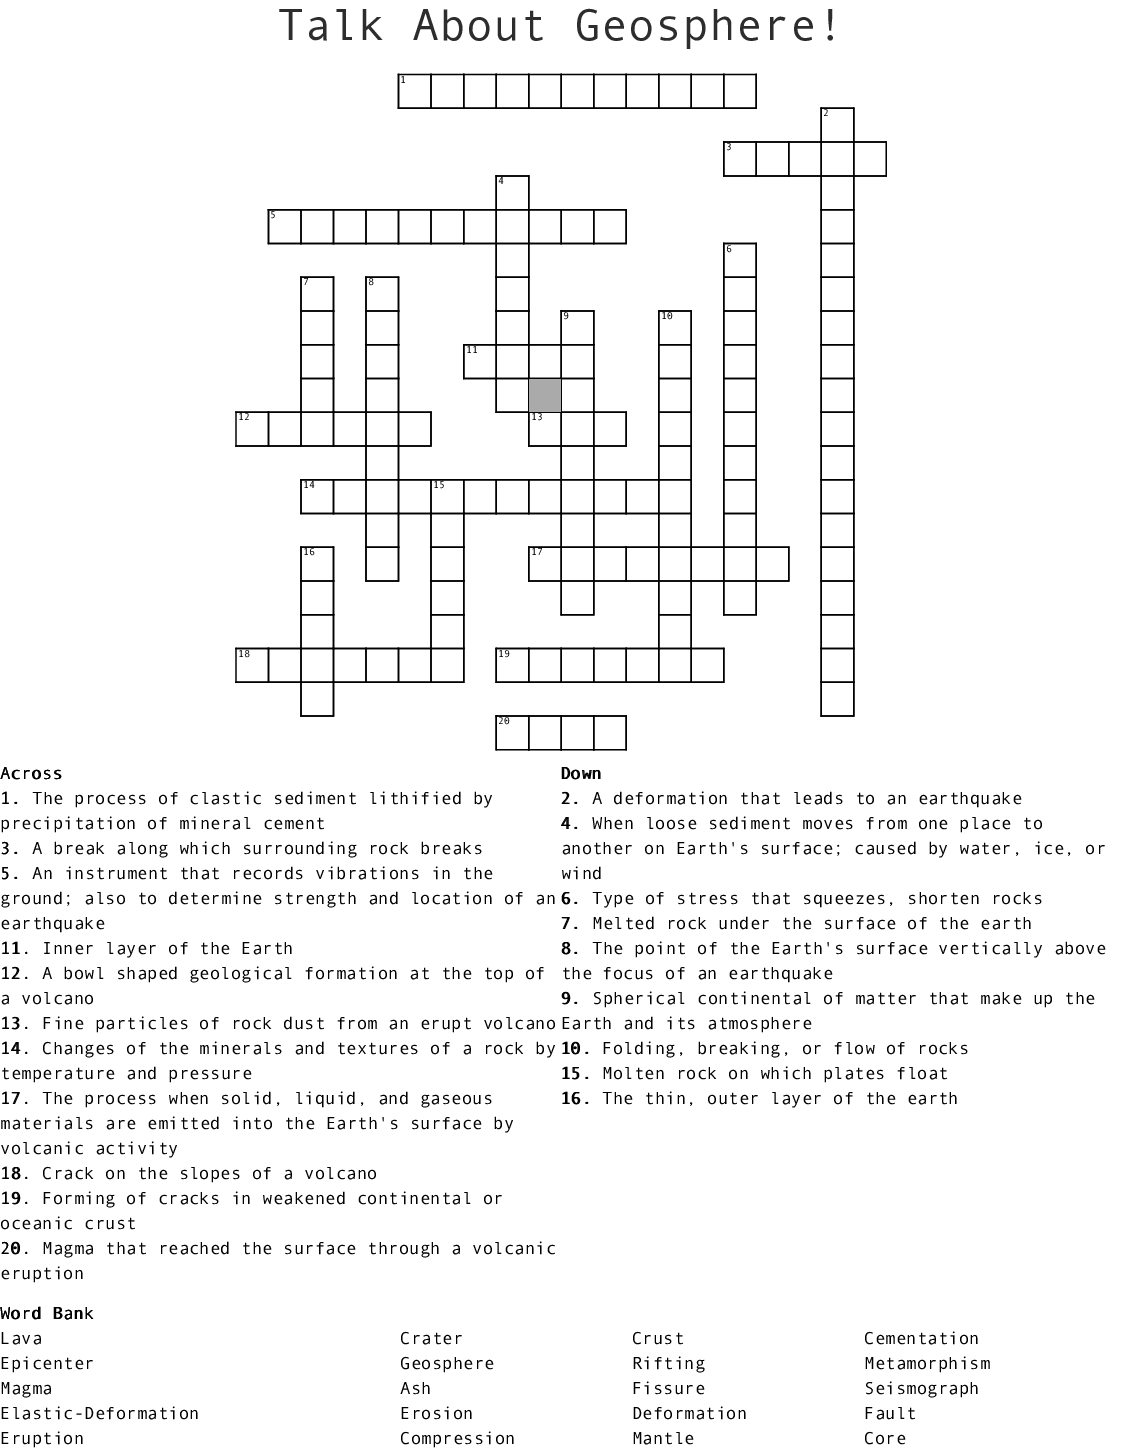 hight resolution of talk about geosphere crossword